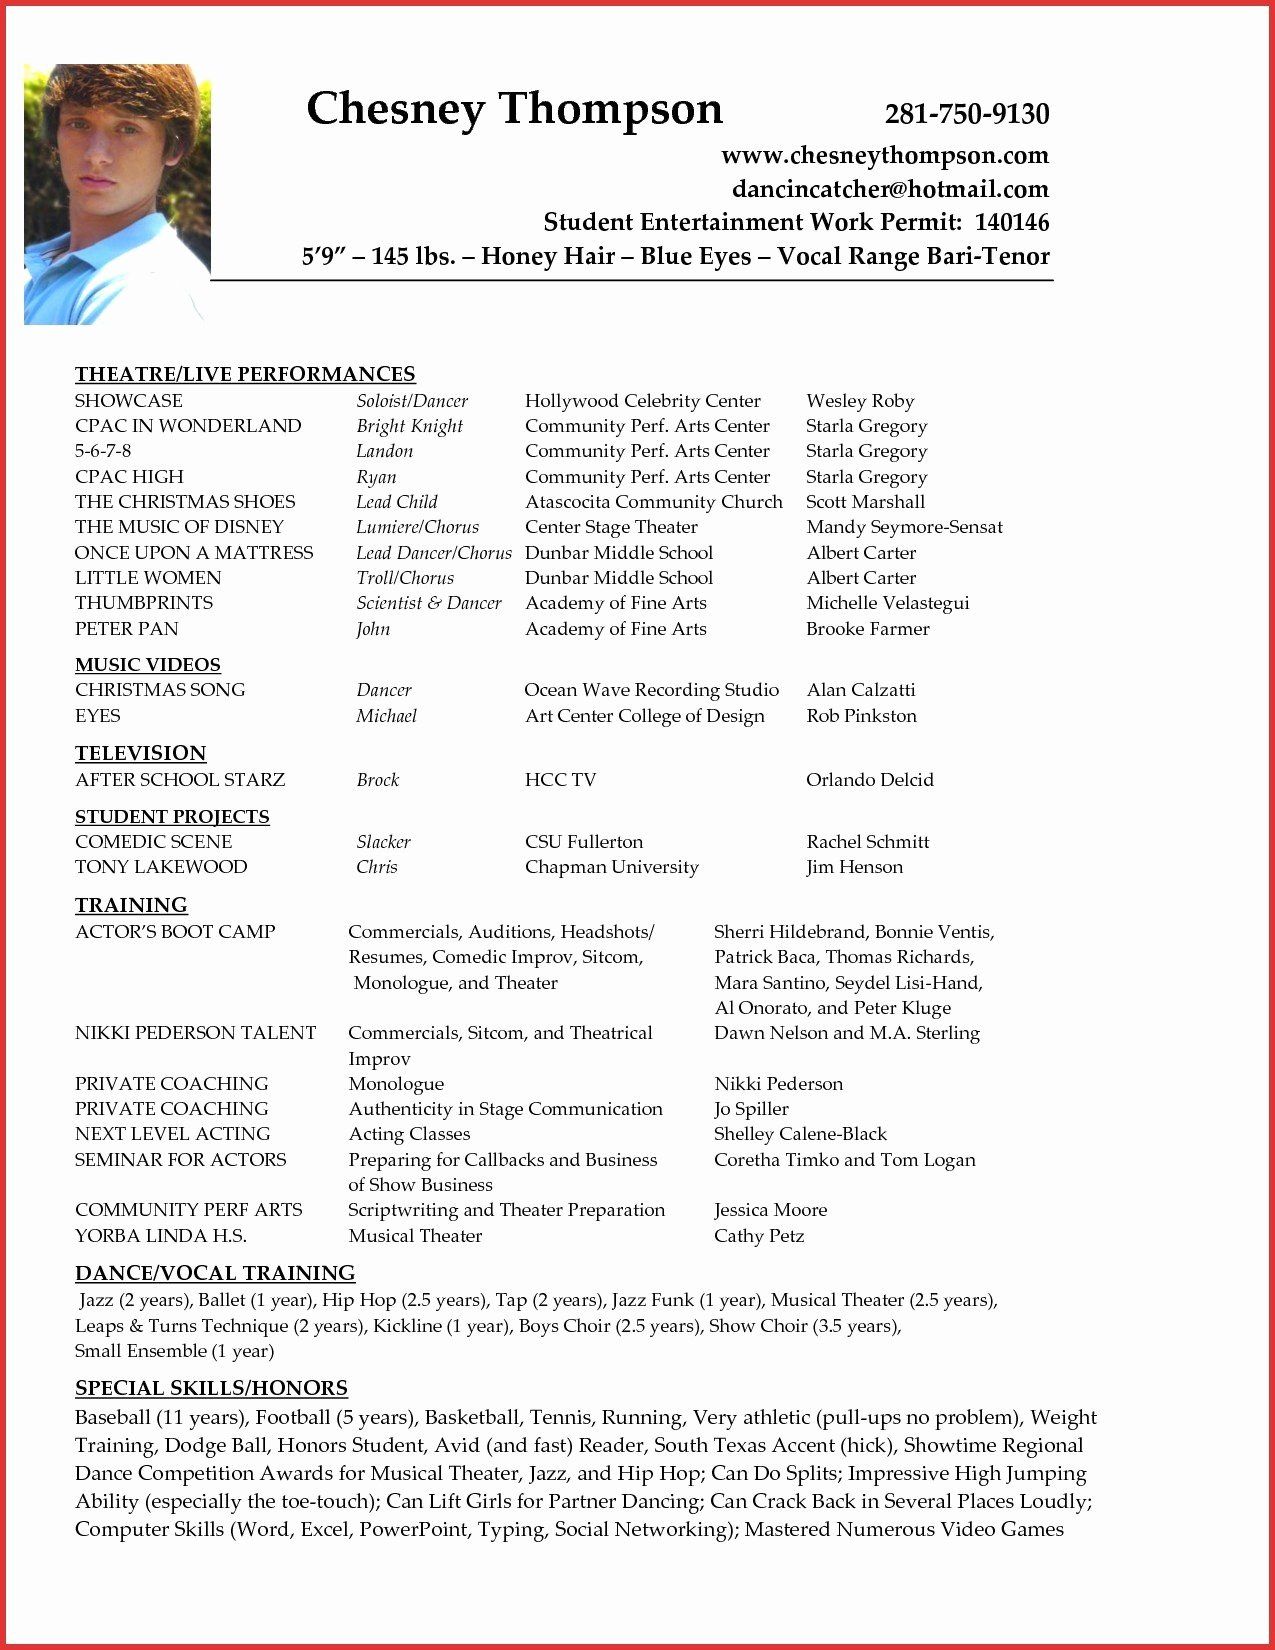 Beginner Actor Resume Template Best Of Acting Resume for Beginners Letter Sample Cv No Experience